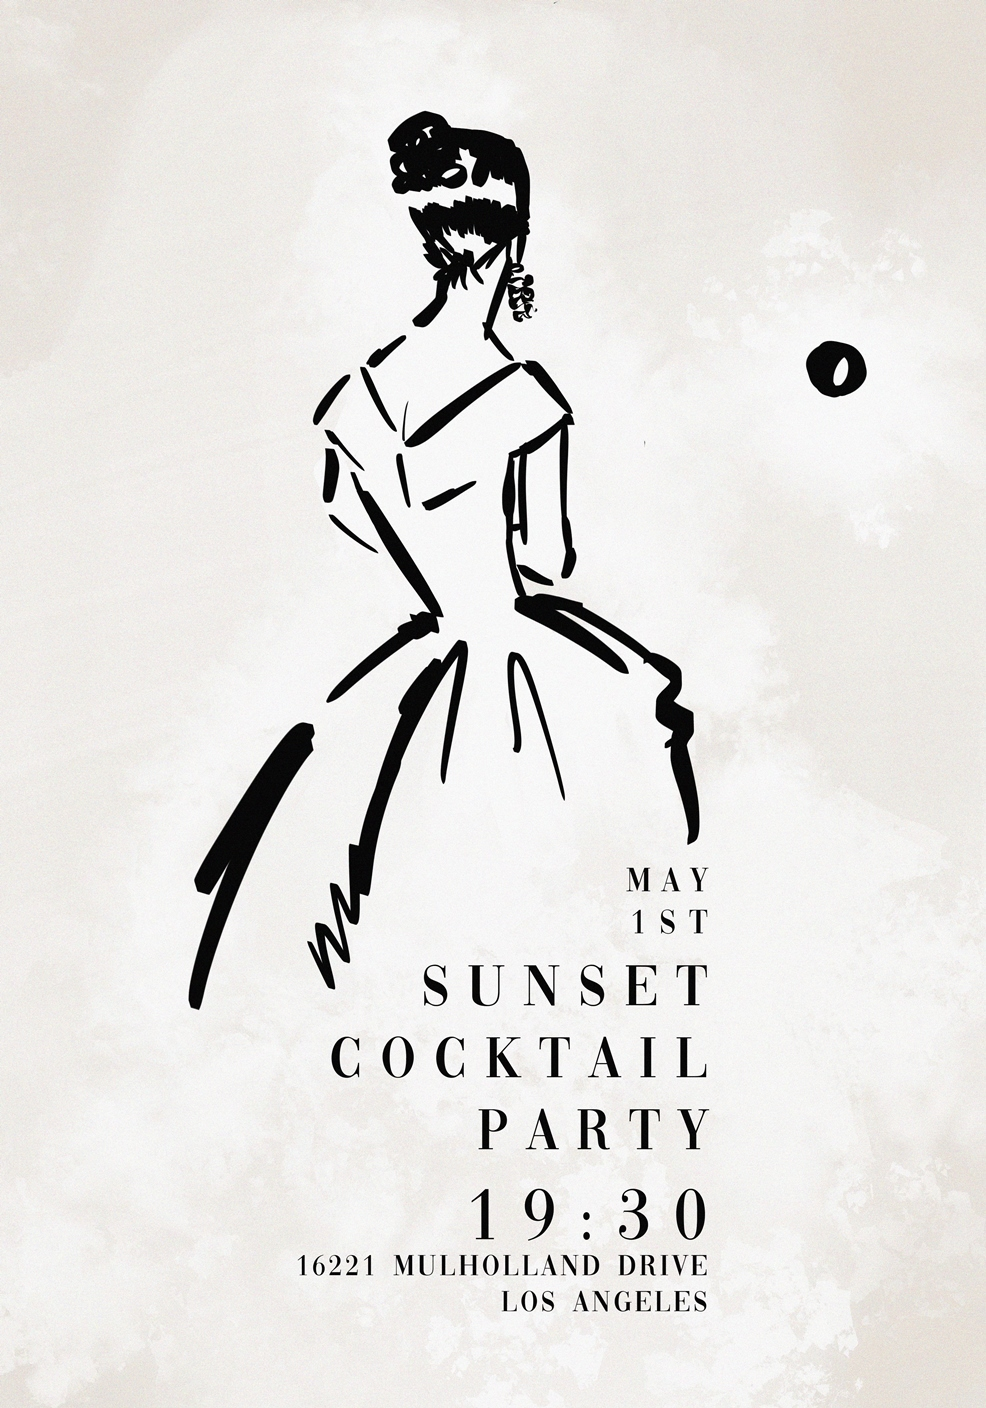 sunset cocktail party